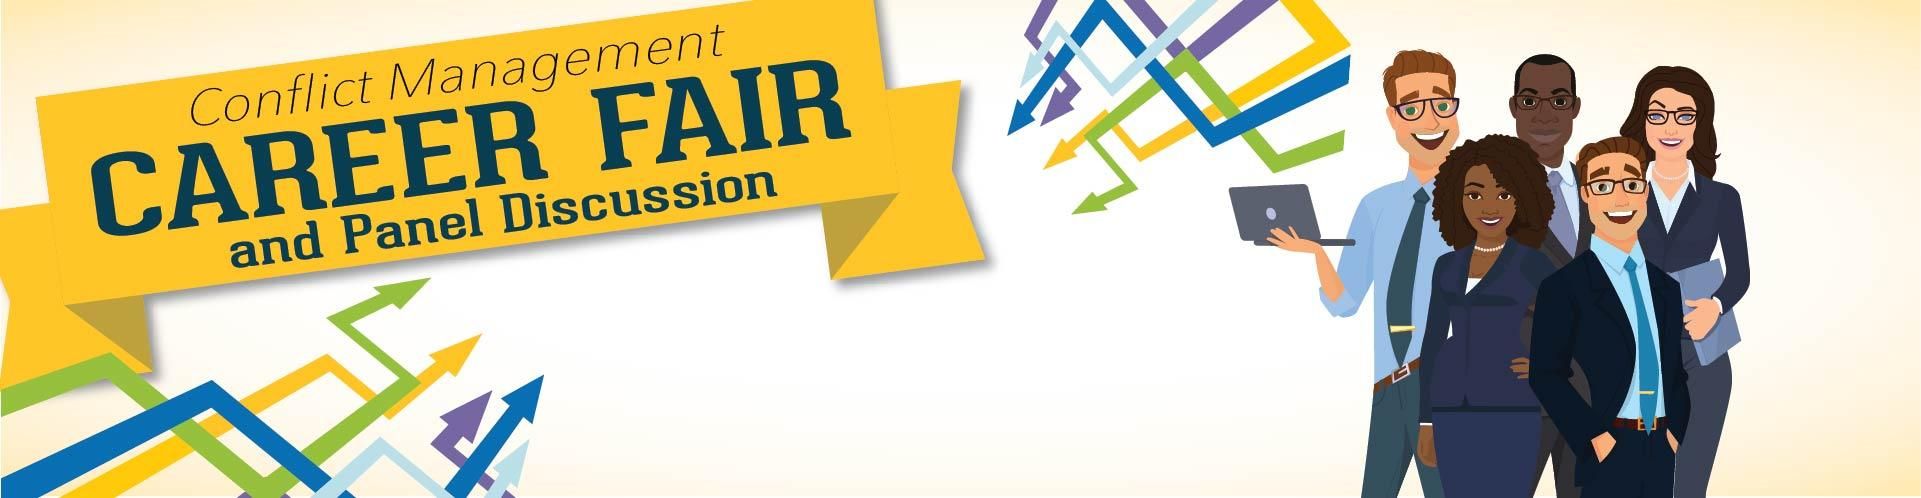 Join Us! Conflict Management Career Fair and Panel Discussion